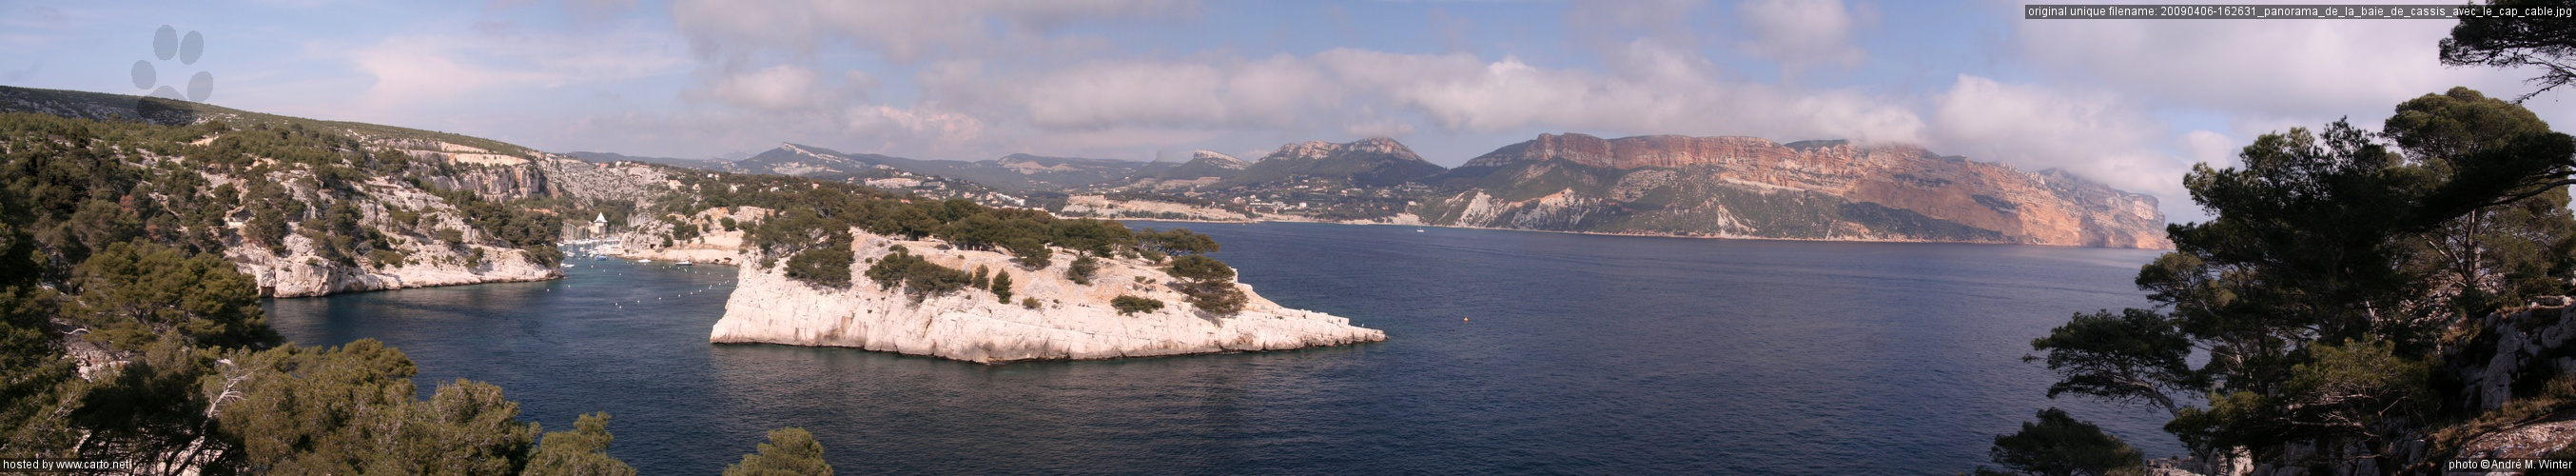 panorama de la baie de cassis avec le cap cable cassis et ses calanques avril 2009. Black Bedroom Furniture Sets. Home Design Ideas